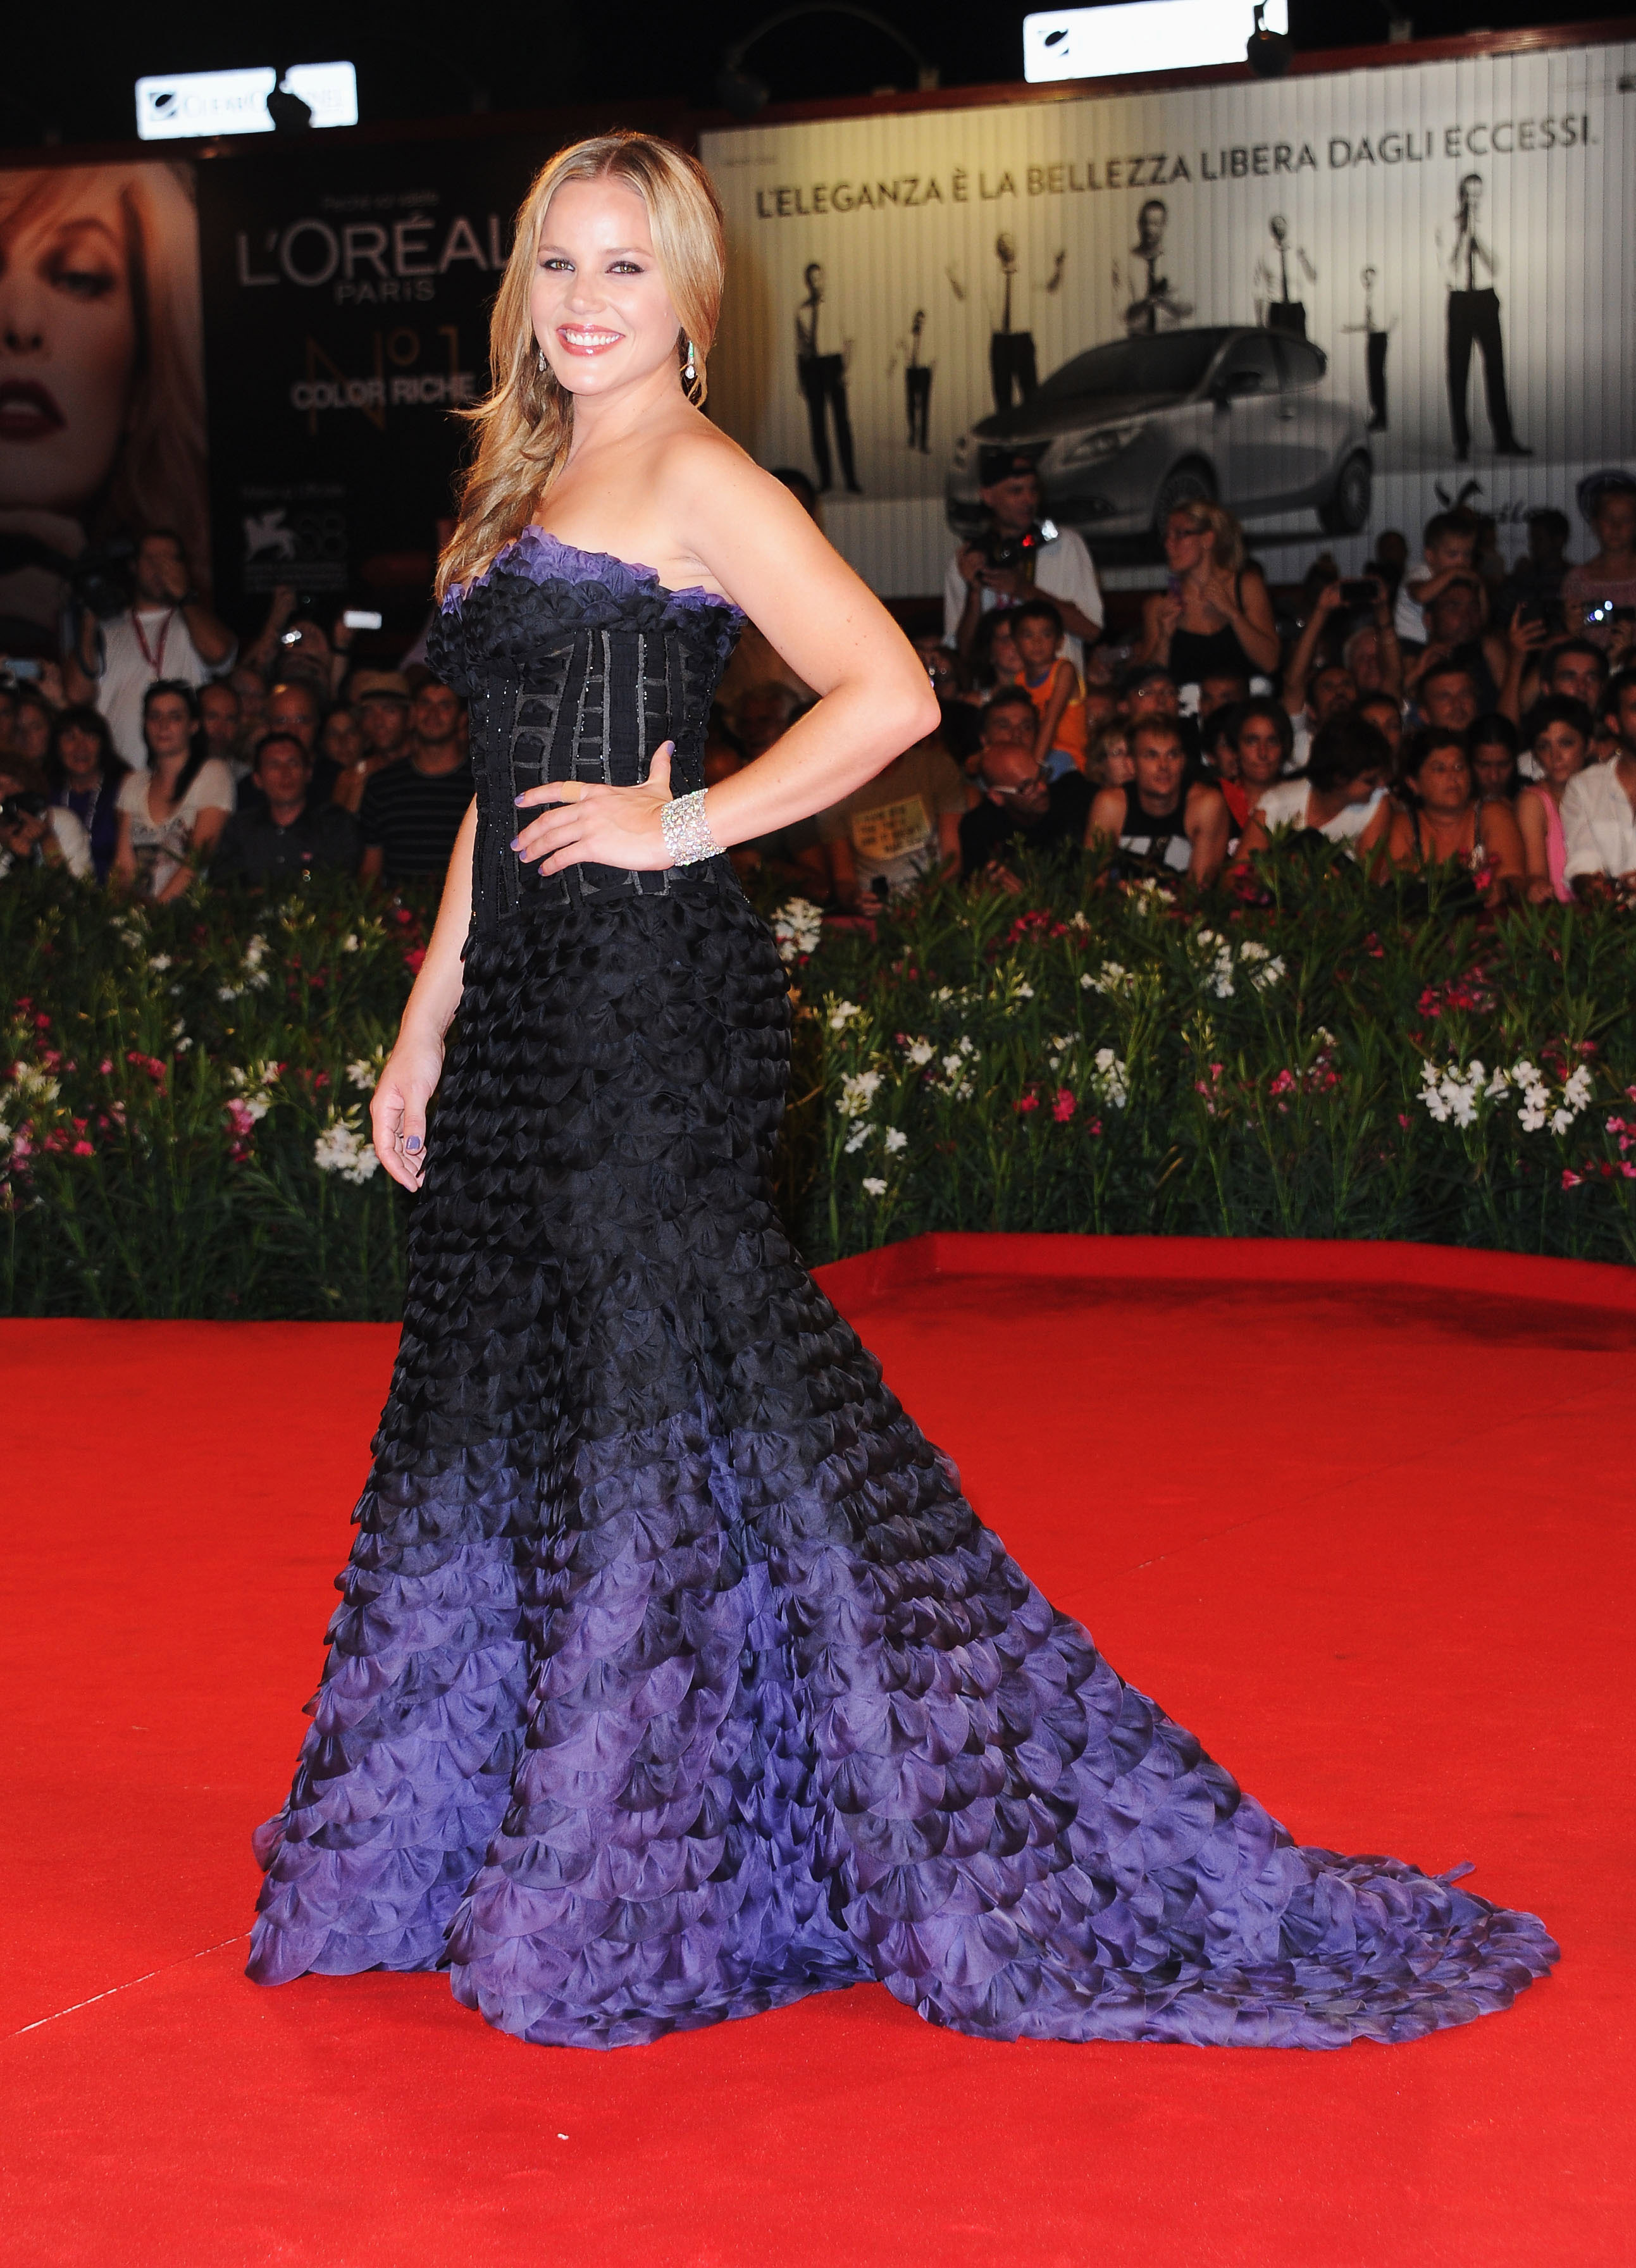 Abbie Cornish stunned in a black and purple ruffled gown by Atelier Versace.